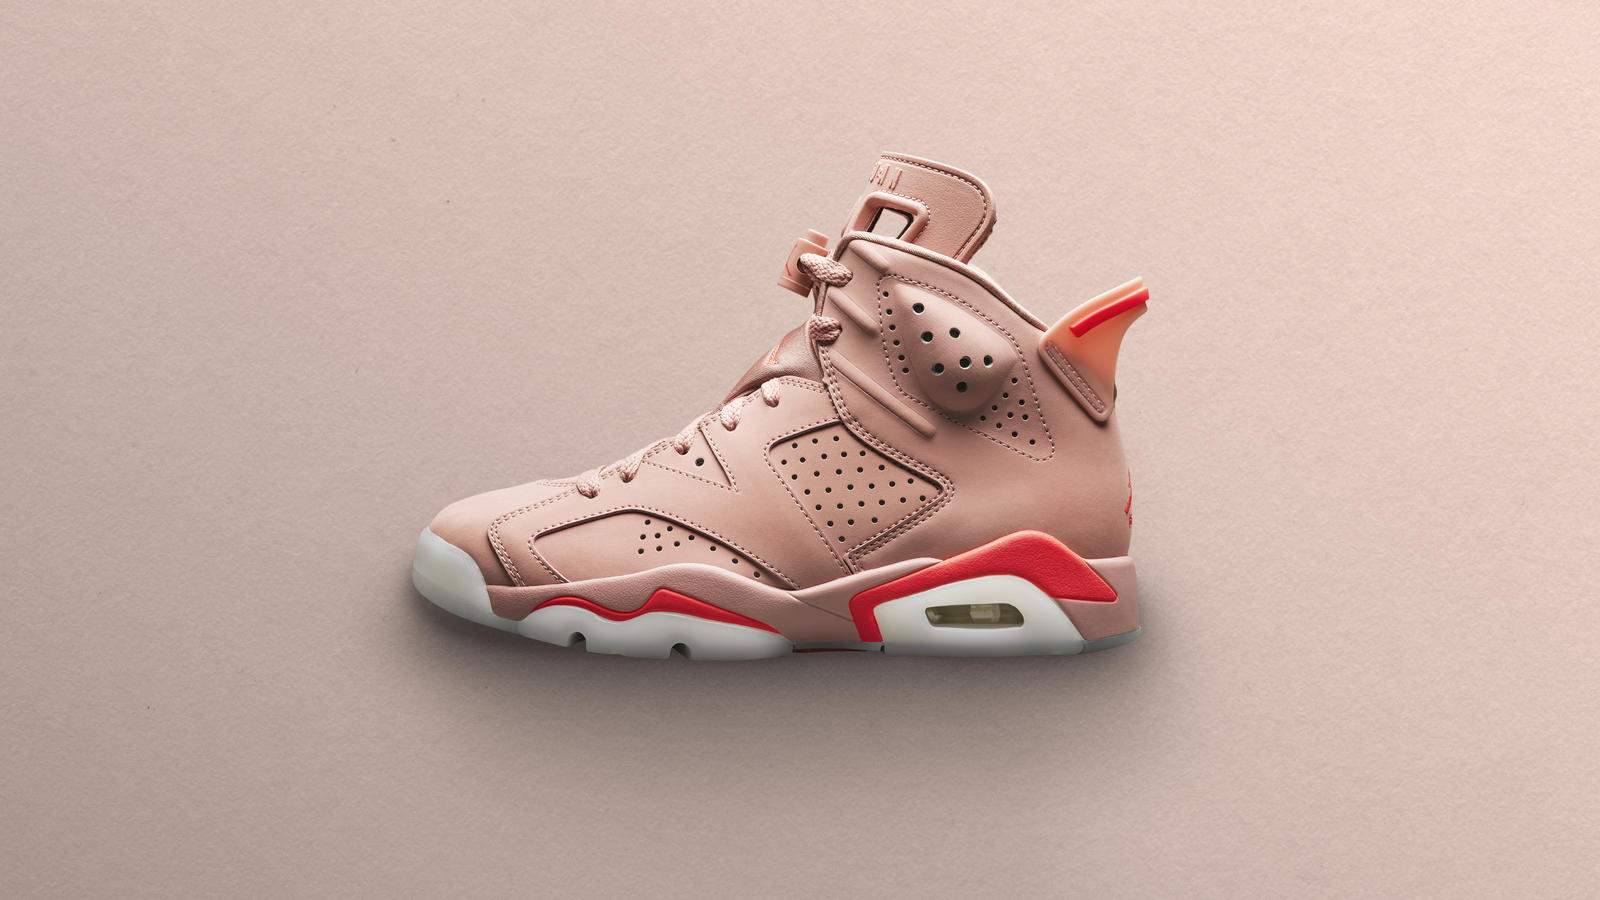 Aleali May x Air Jordan VI Millennial Pink 0